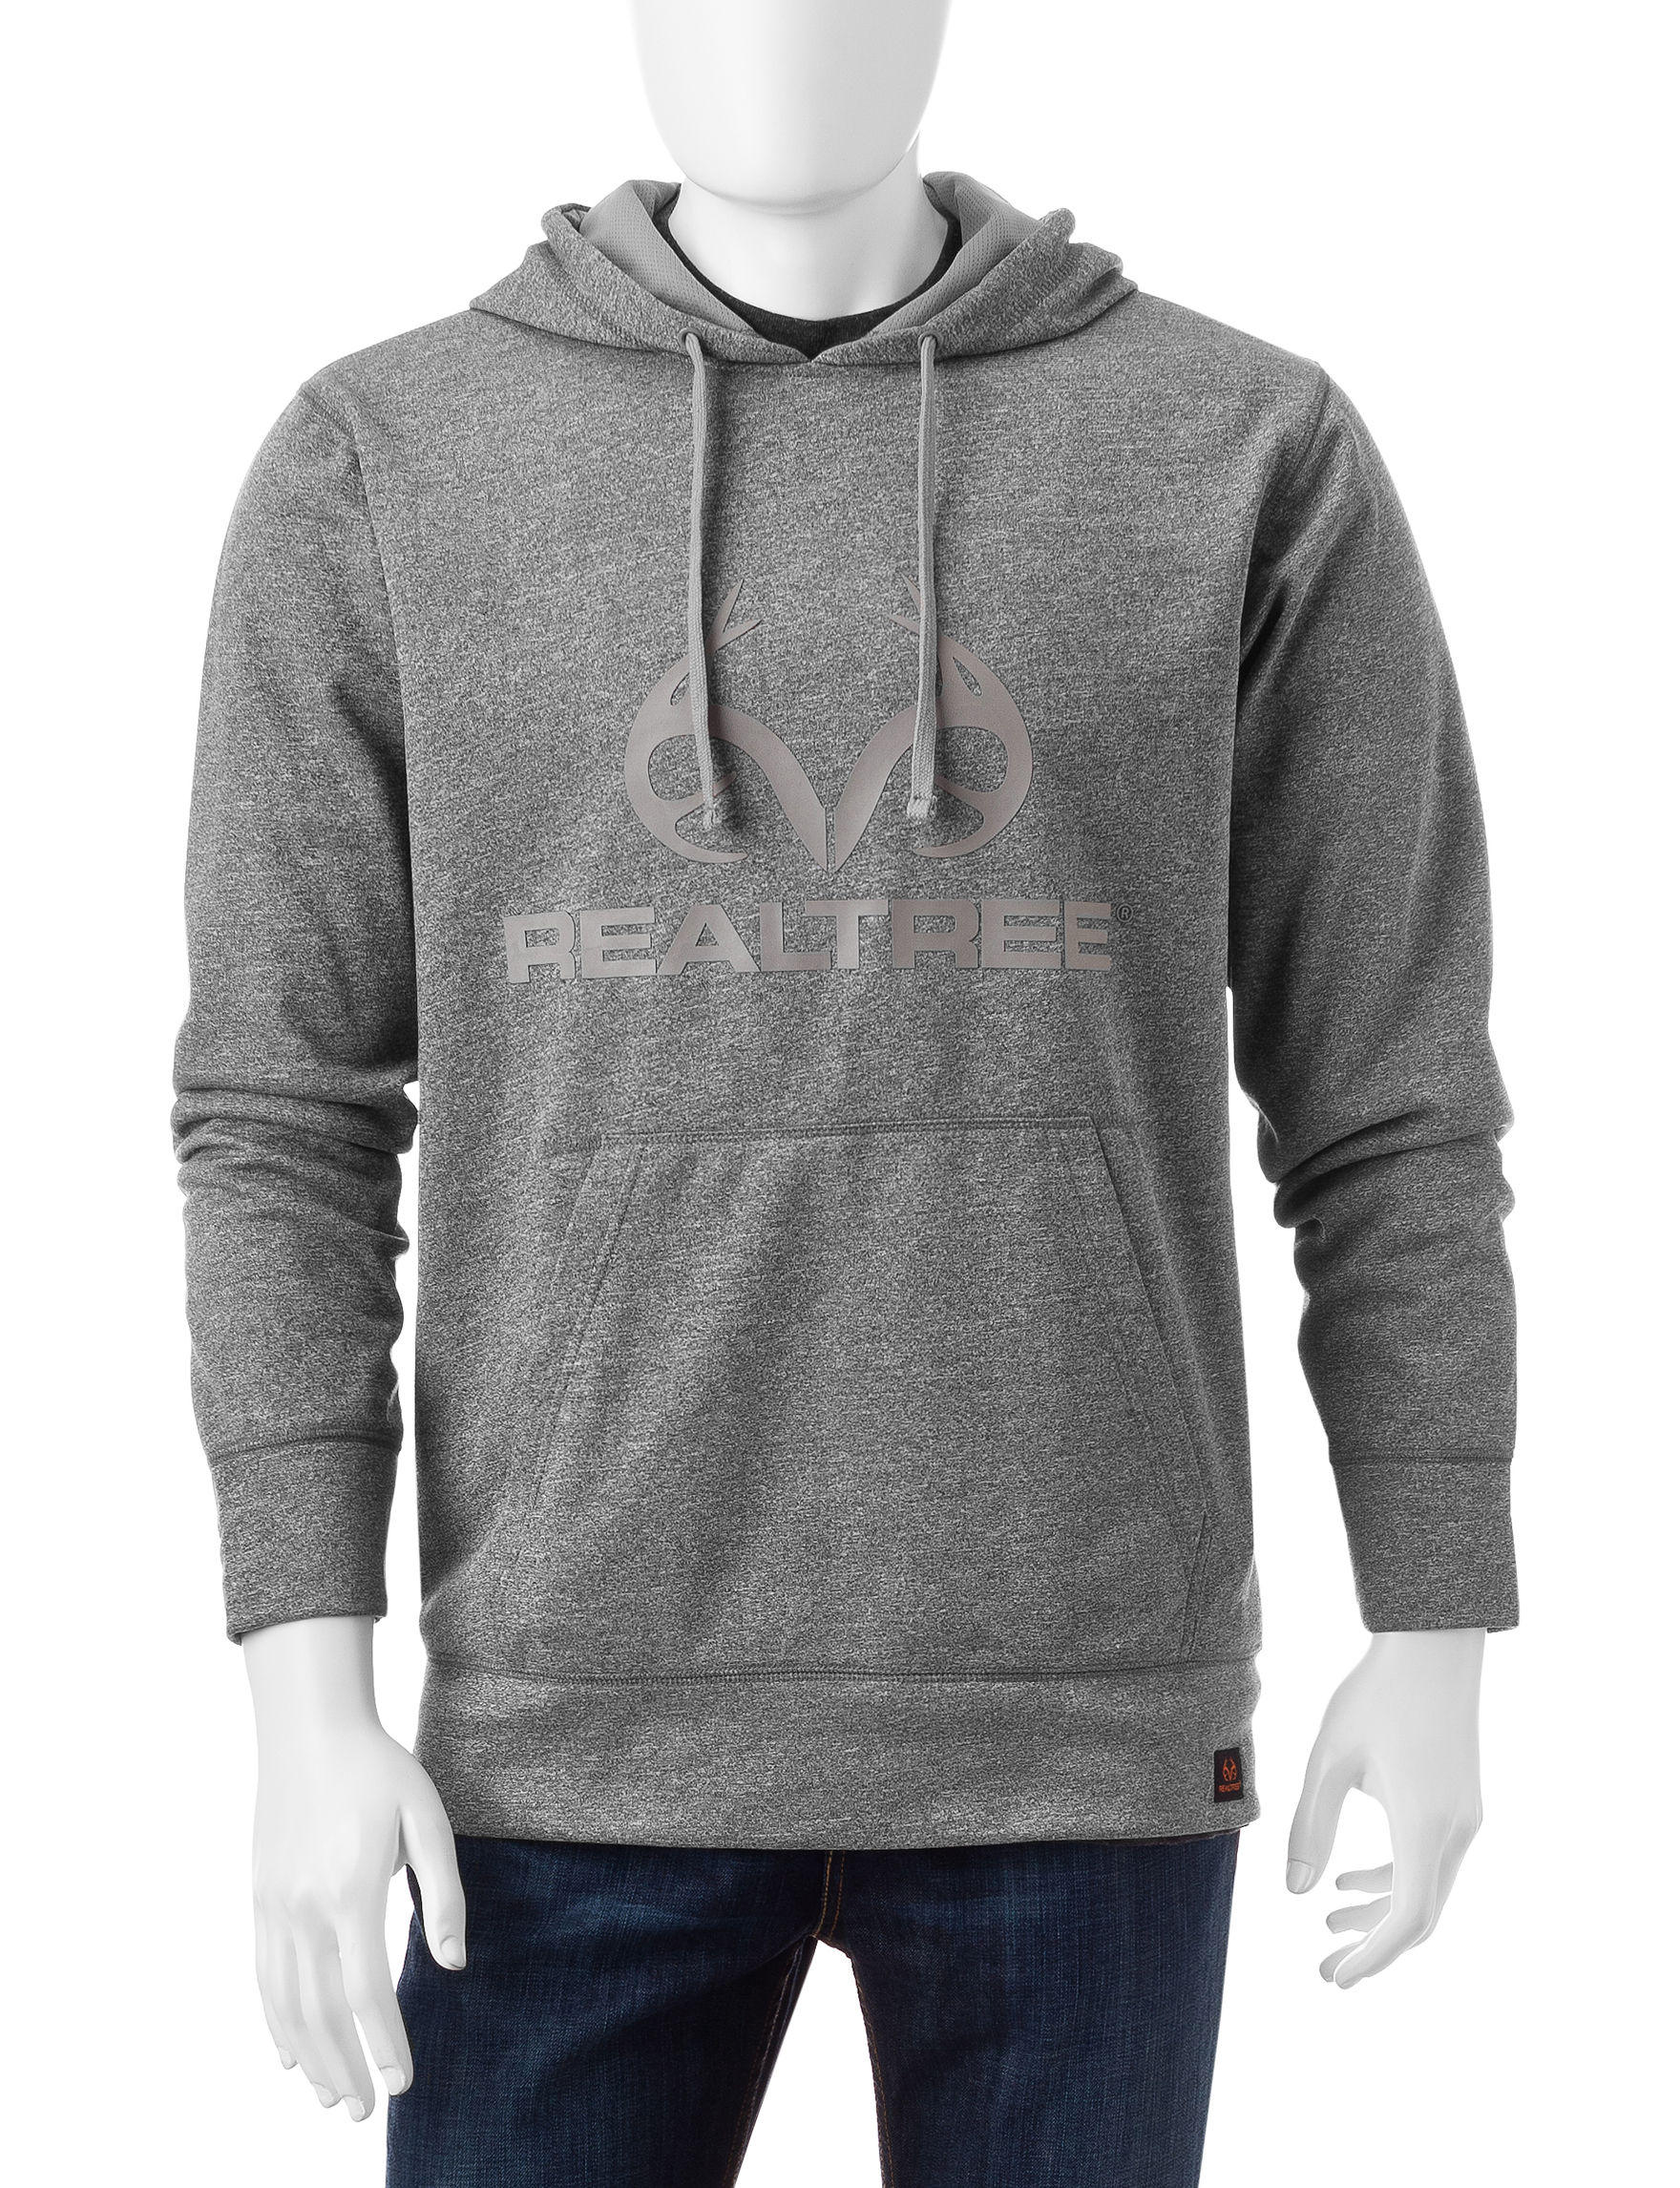 Realtree Heather Grey Pull-overs